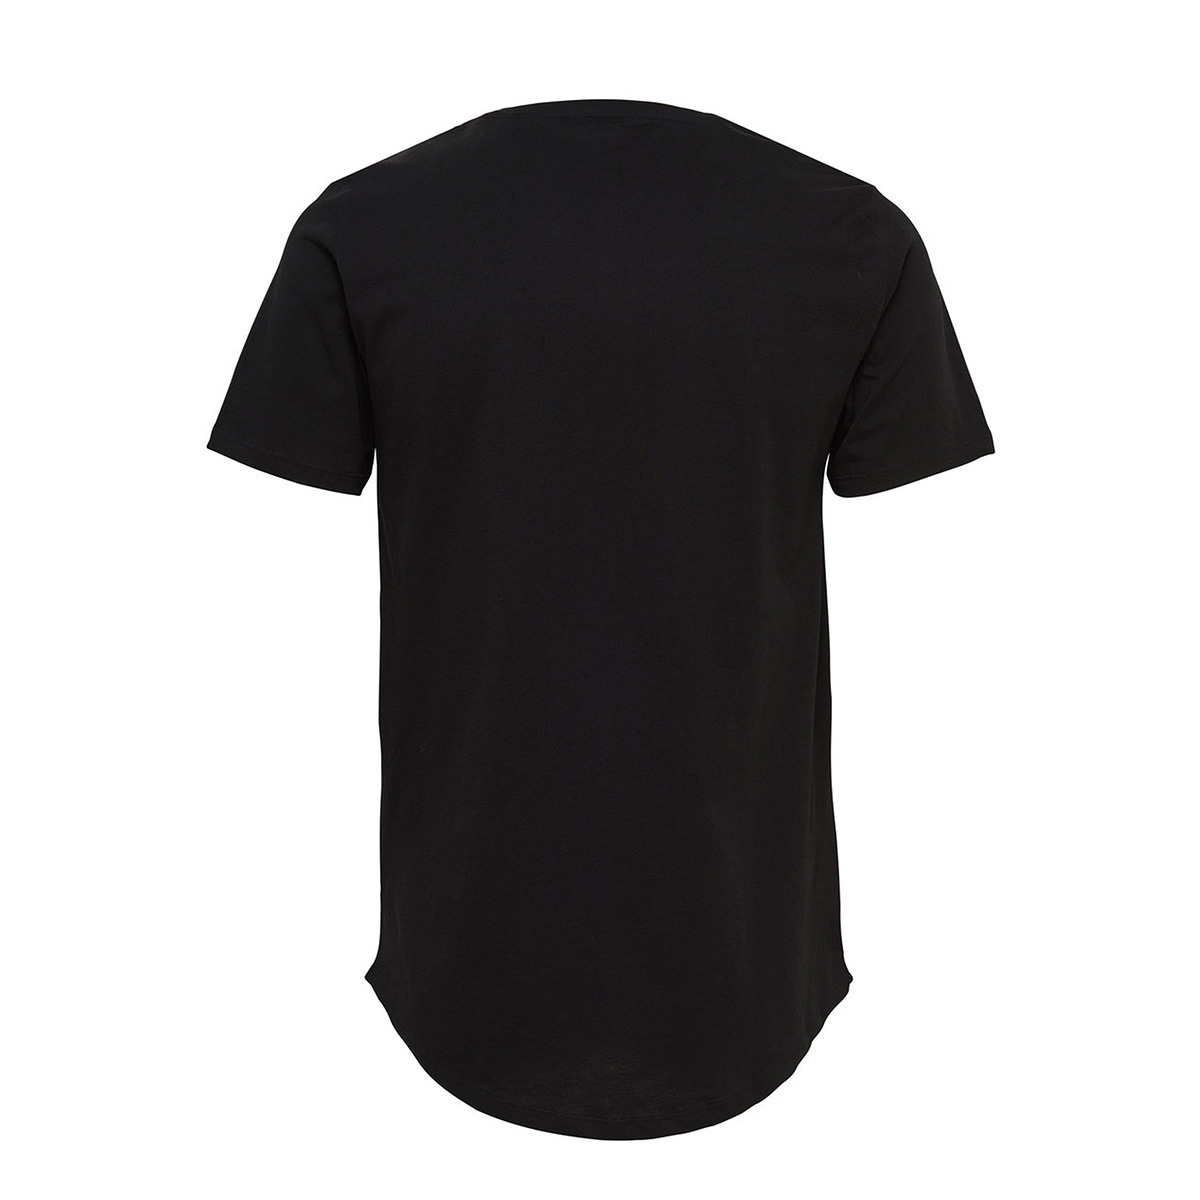 onsmatt longy ss tee noos 22002973 only & sons t-shirt black